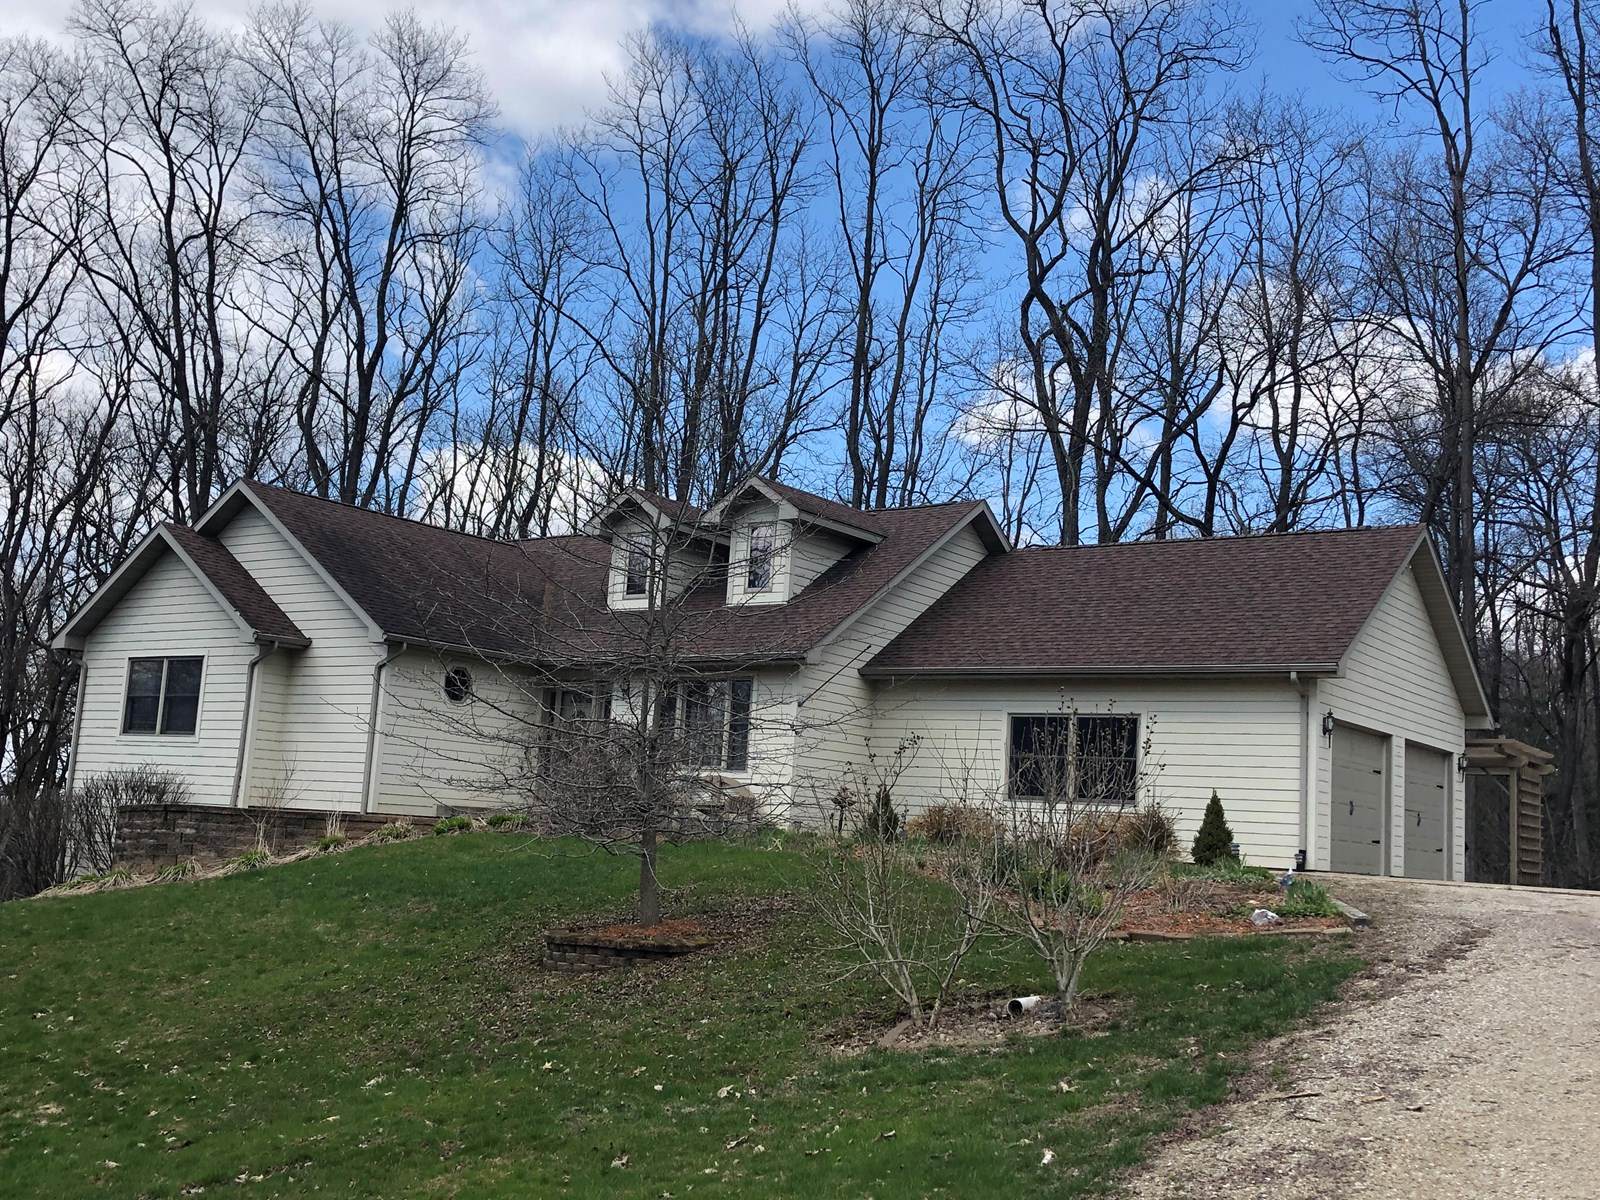 5 Bedroom Home for sale in Galena